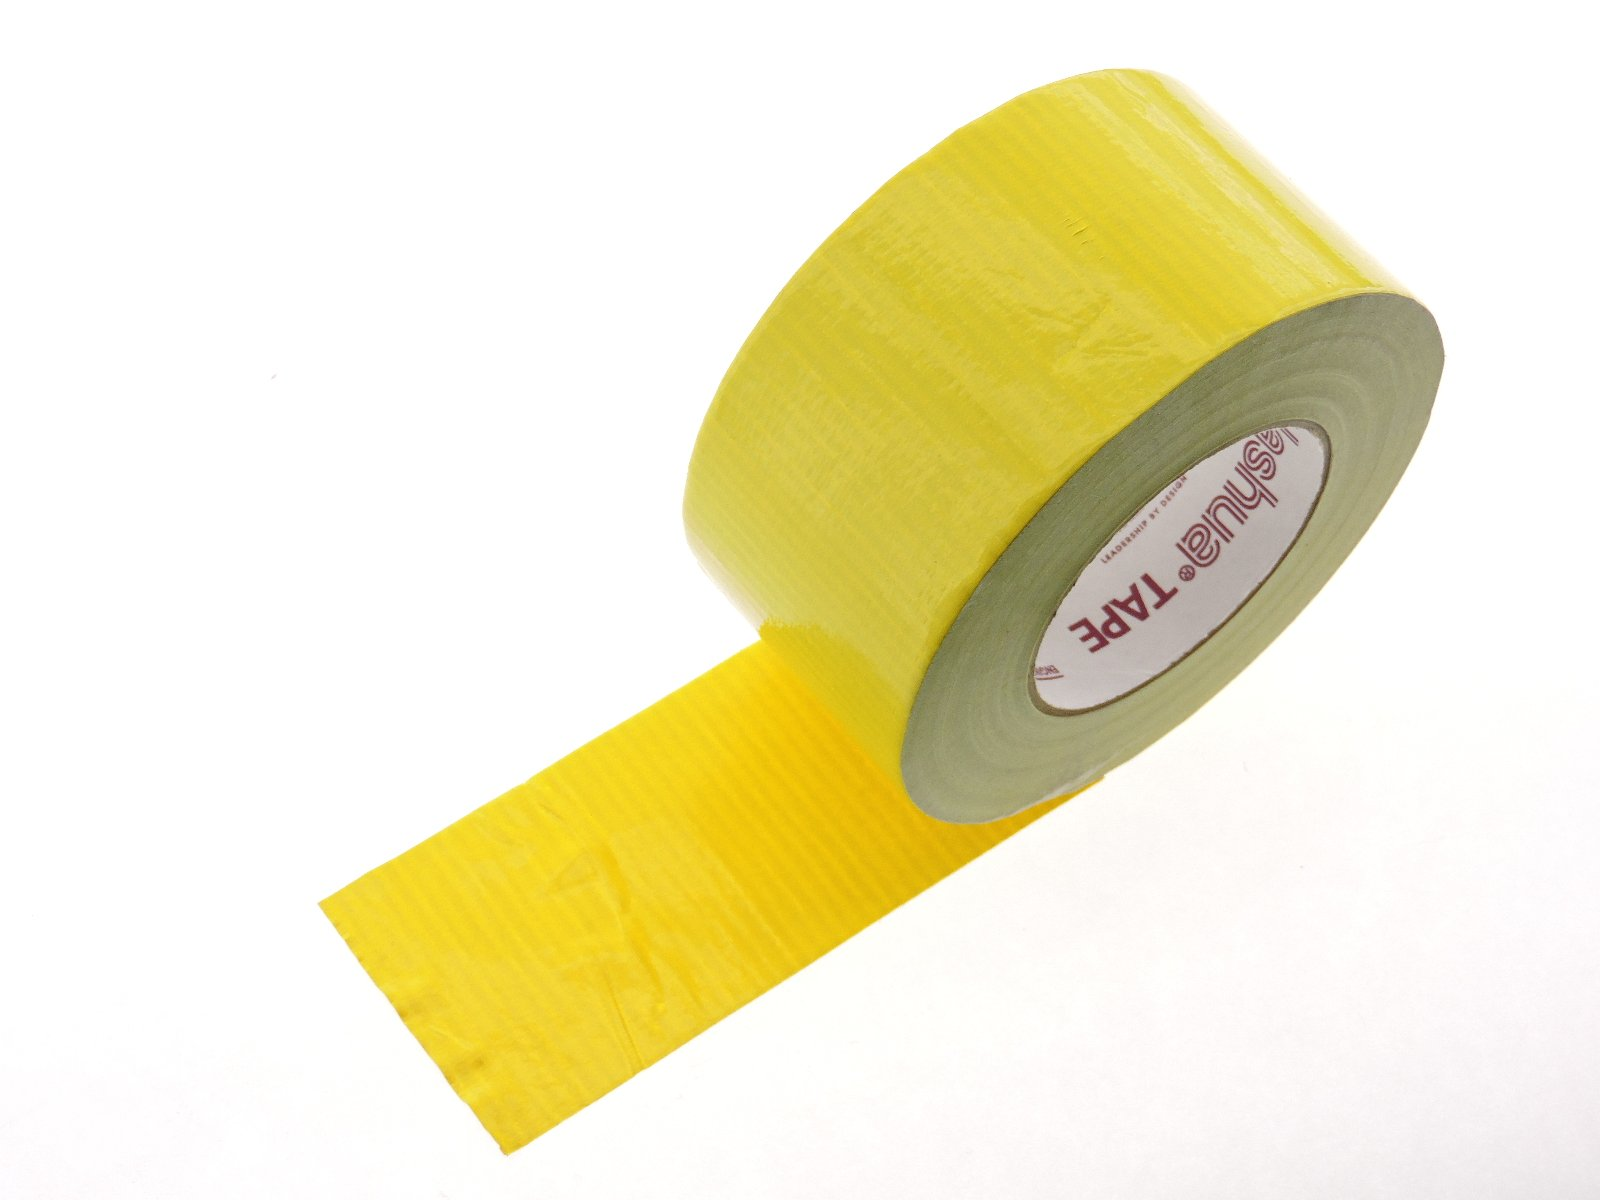 3'' in Yellow Duct Tape Nashua 2280 Heavy 9 mil Cloth Reinforced PE Back Duct Tape Water UV Resistant Hand Tearable 60yd USA Made 70 oz inch adhesion 20% elongation 24 lb in tensile strength